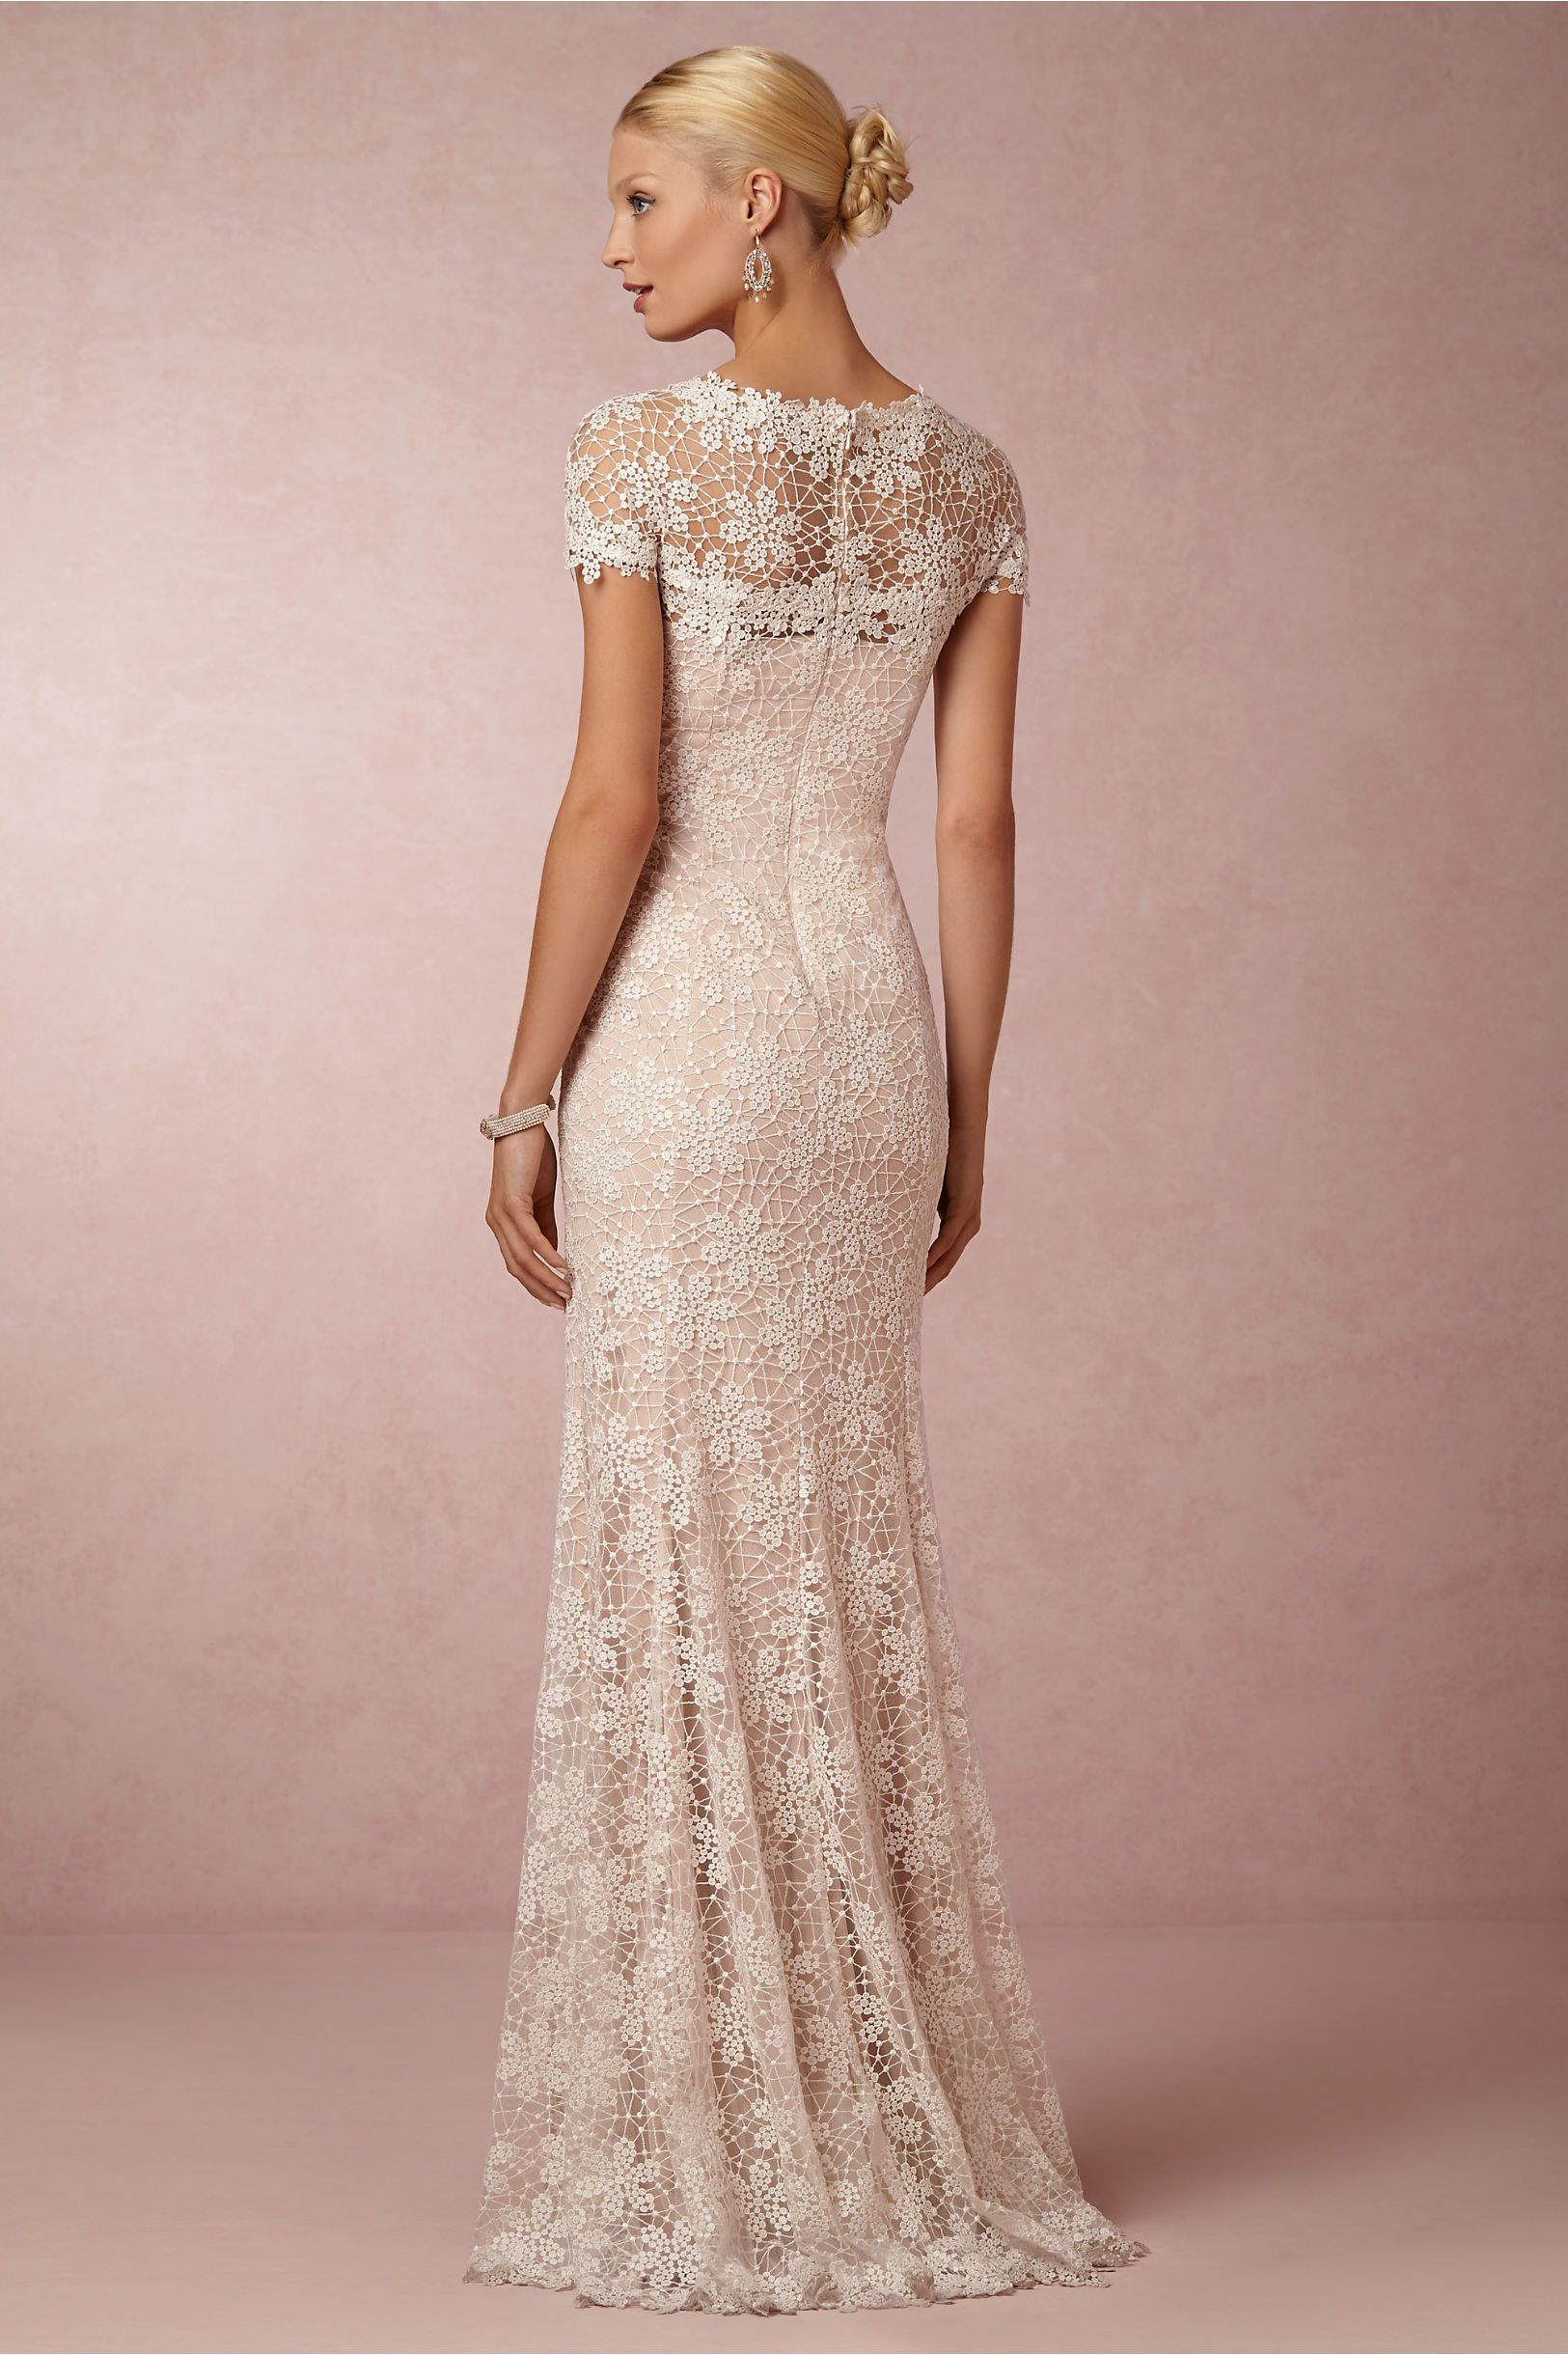 Nova lace gown in bride wedding dresses at bhldn